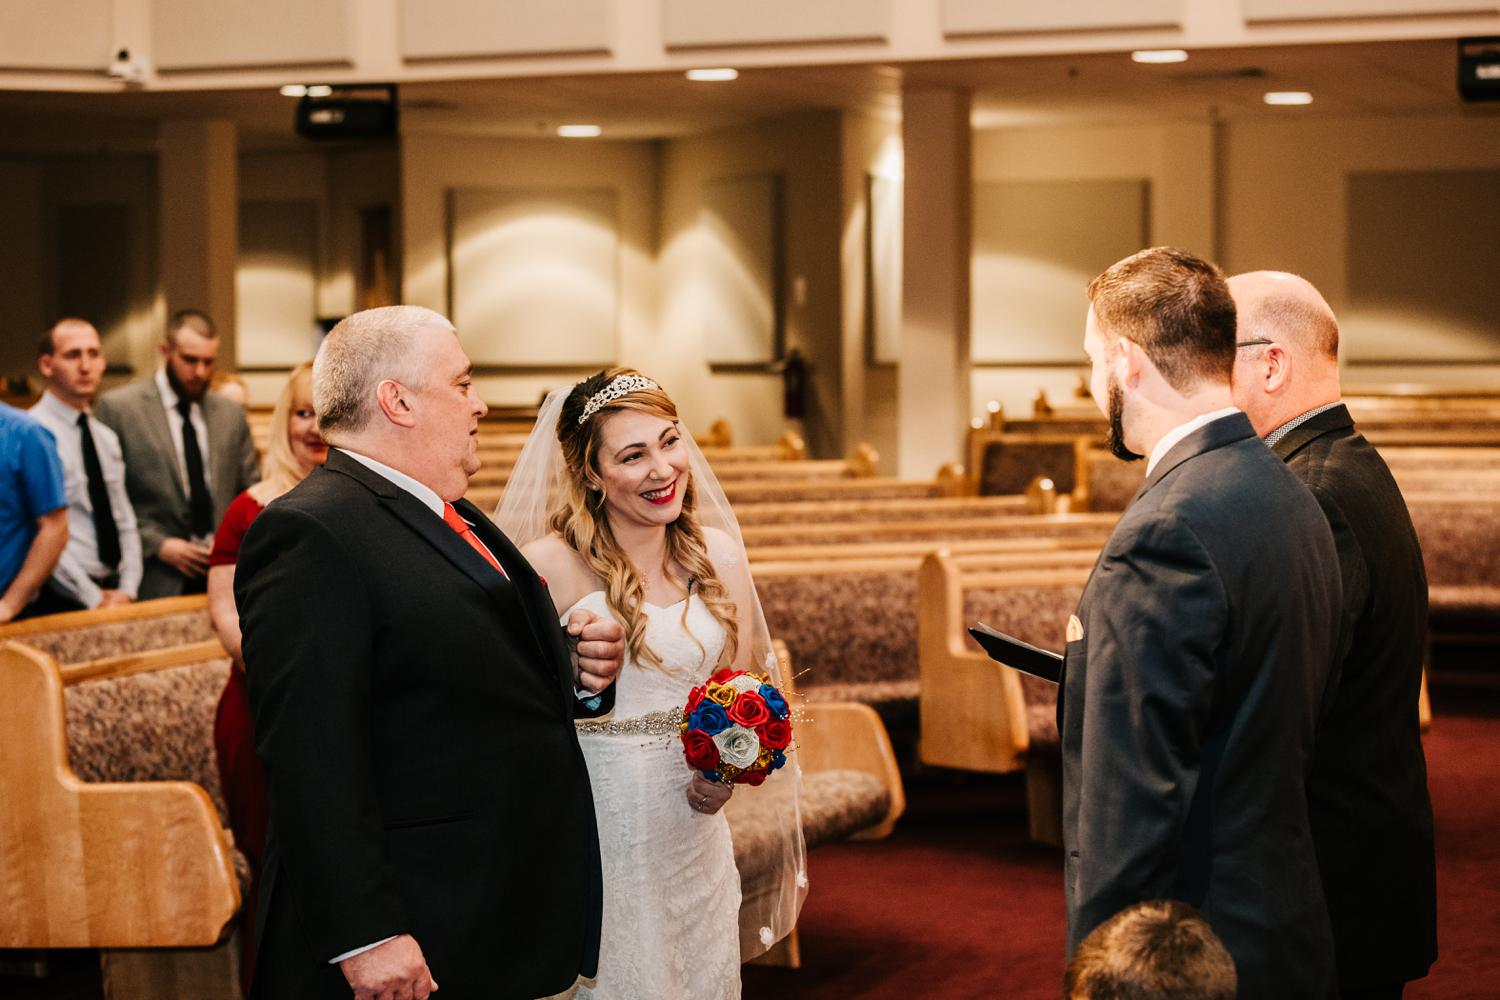 Father giving away bride looking at groom